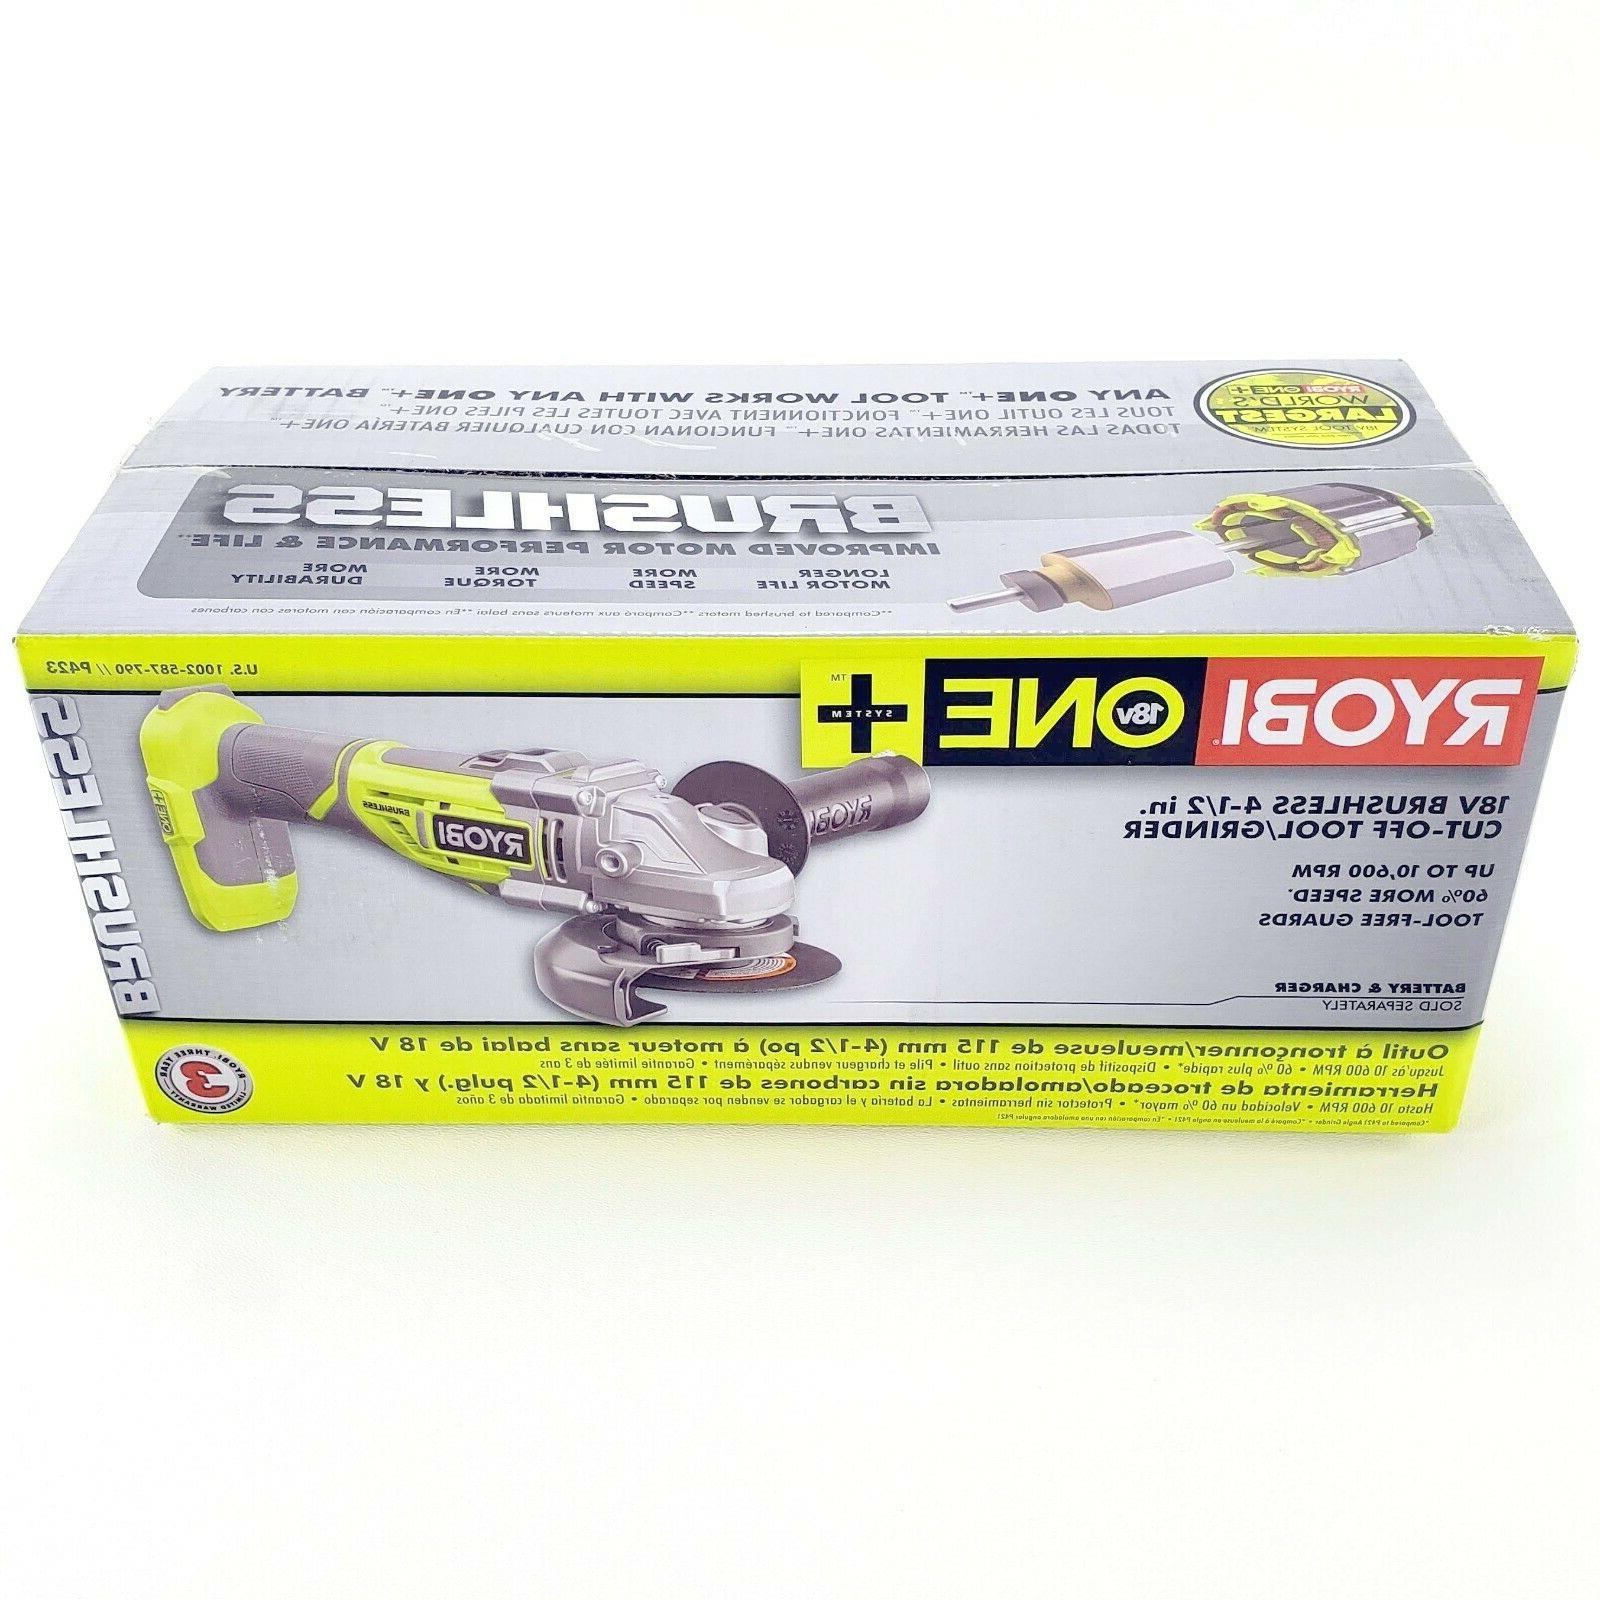 RYOBI 18V Angle Grinder Cut Tool ONE+ Brushless P423 Handle